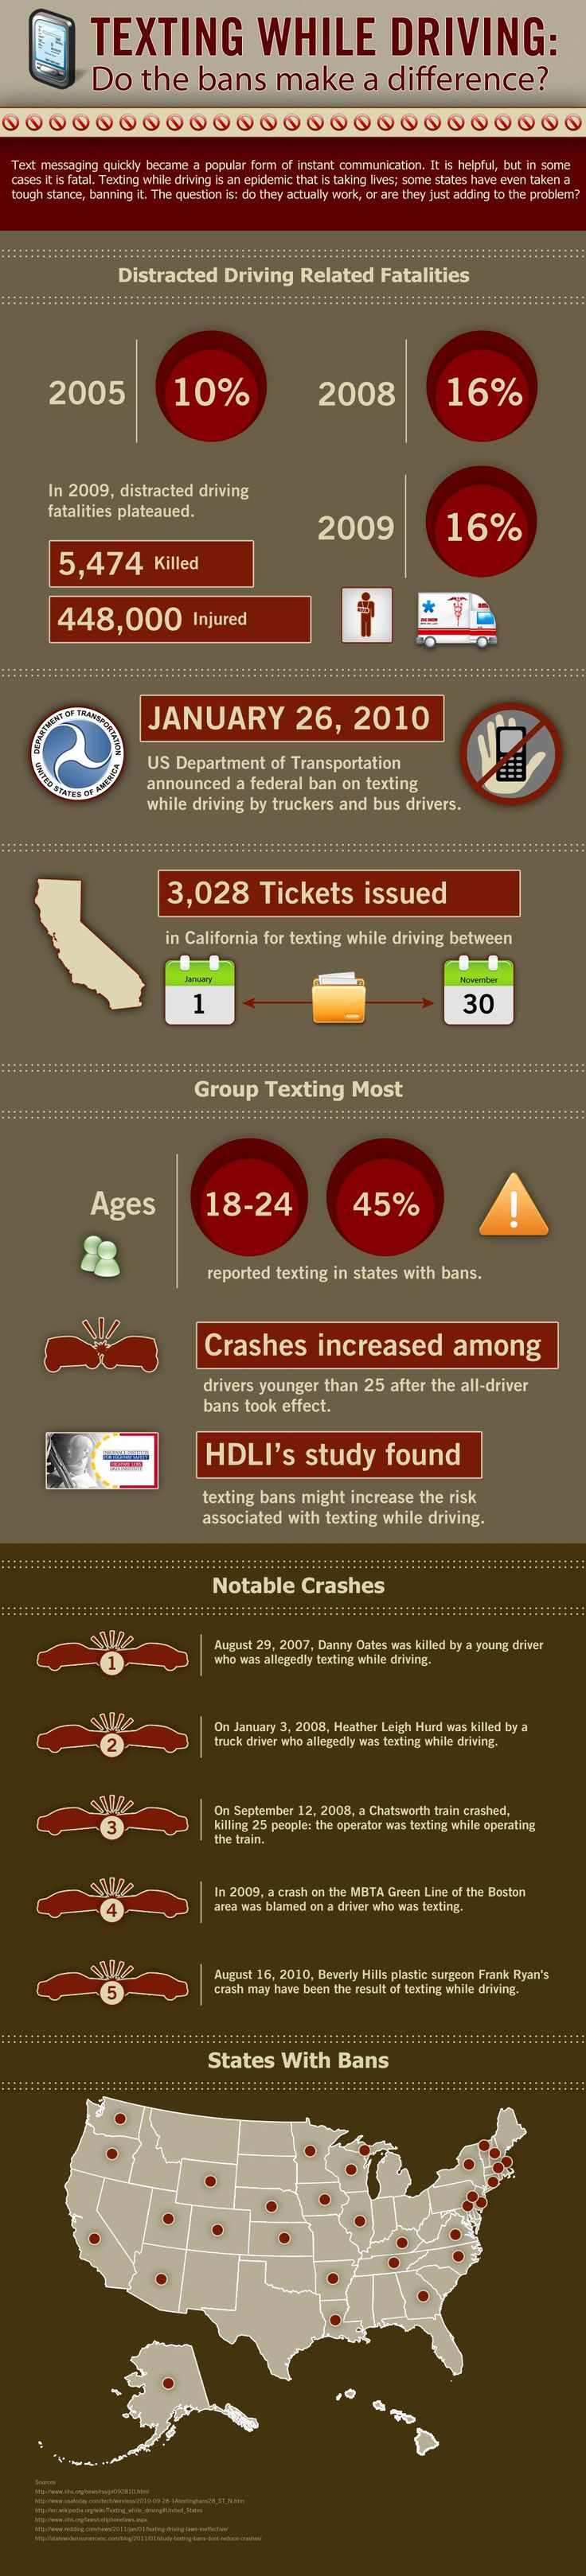 The 25 best texting while driving ideas on pinterest distracted driving driving safety and texting and driving accidents